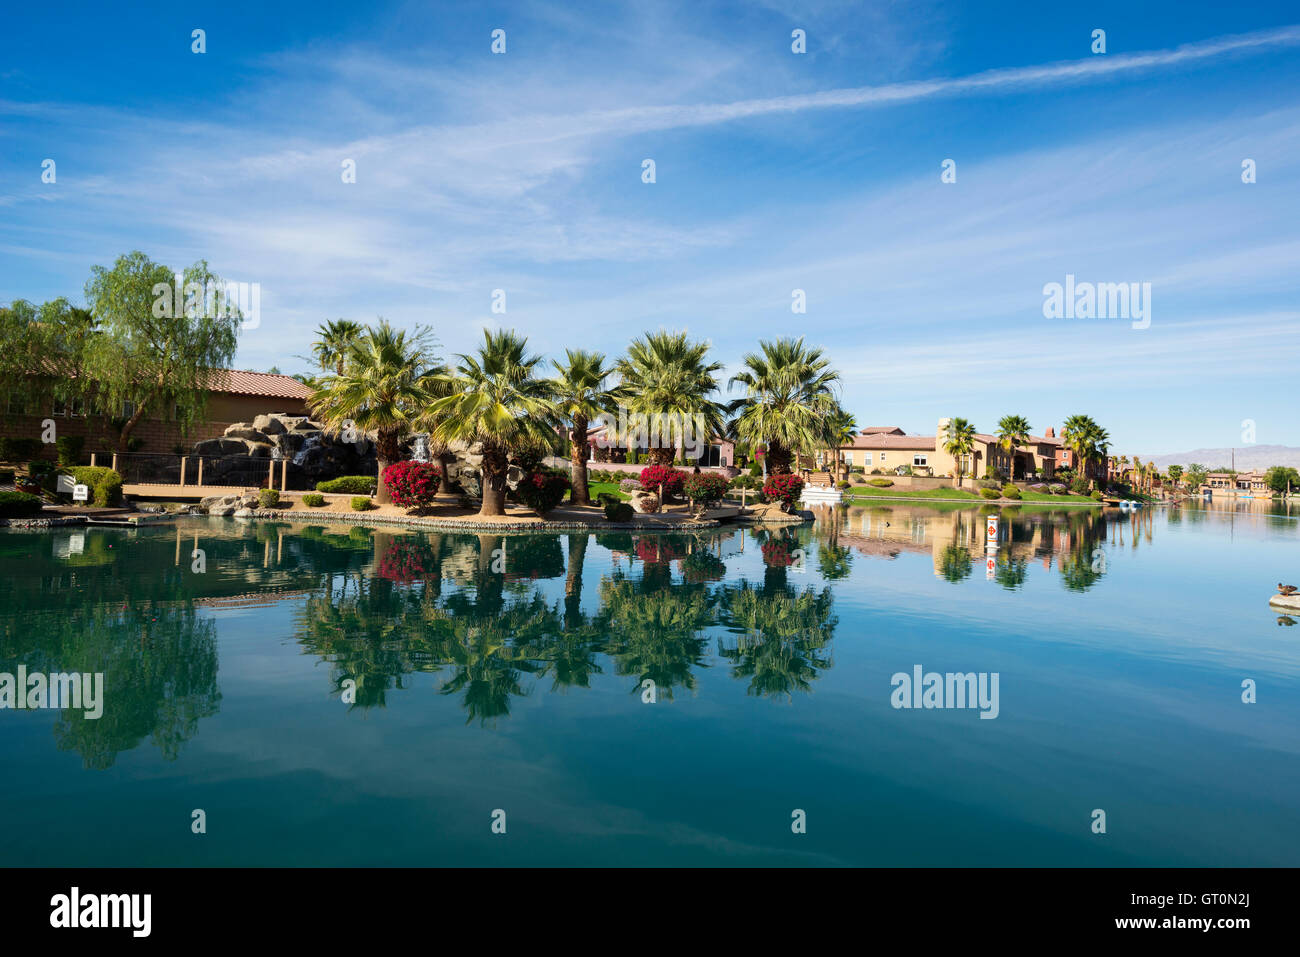 Sunny desert home lifestyle in gated community in Rancho MIrage, California Coachella Valley - Stock Image